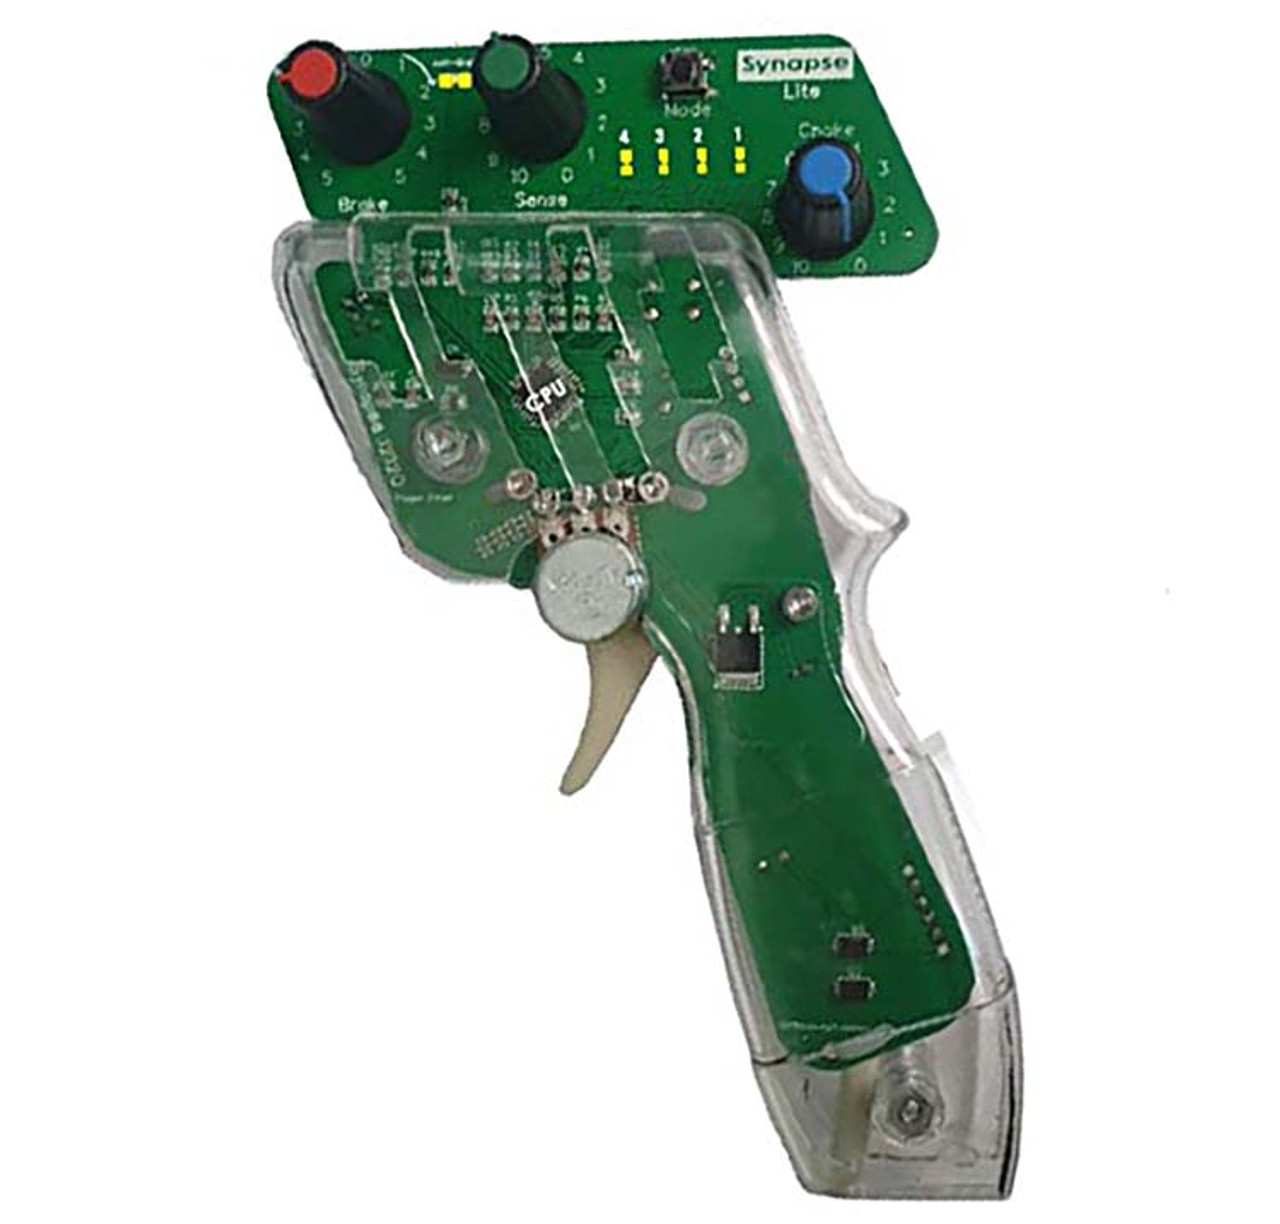 Synapse Lite Digital Computerized Controller - SYN-1001